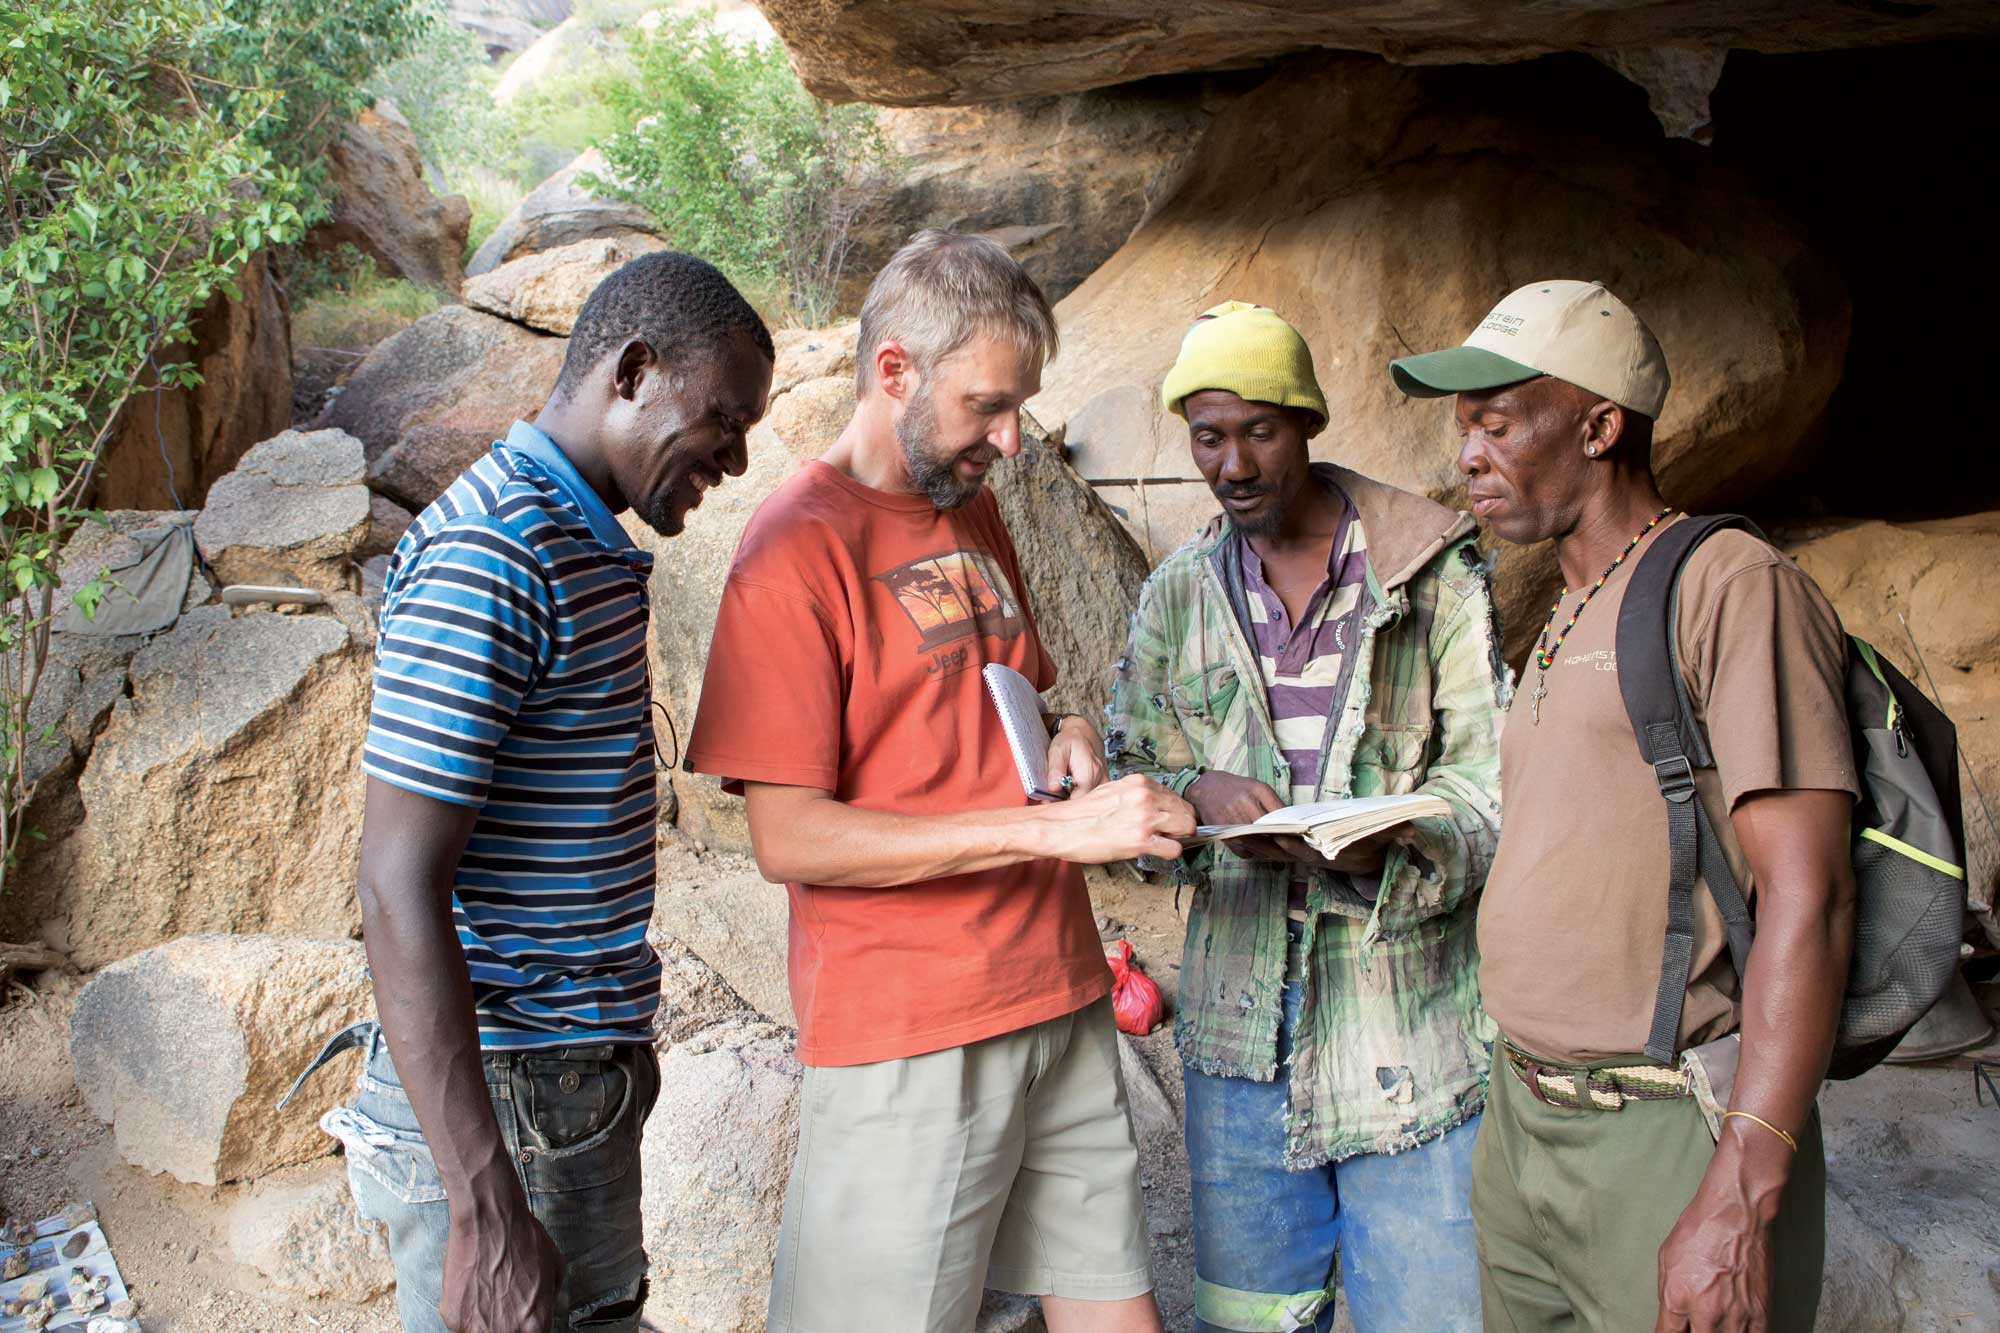 Guide-Jansen-(right)-listens-whiel-Arnold-shows-gem-specimens-from-Erong-in-a-book